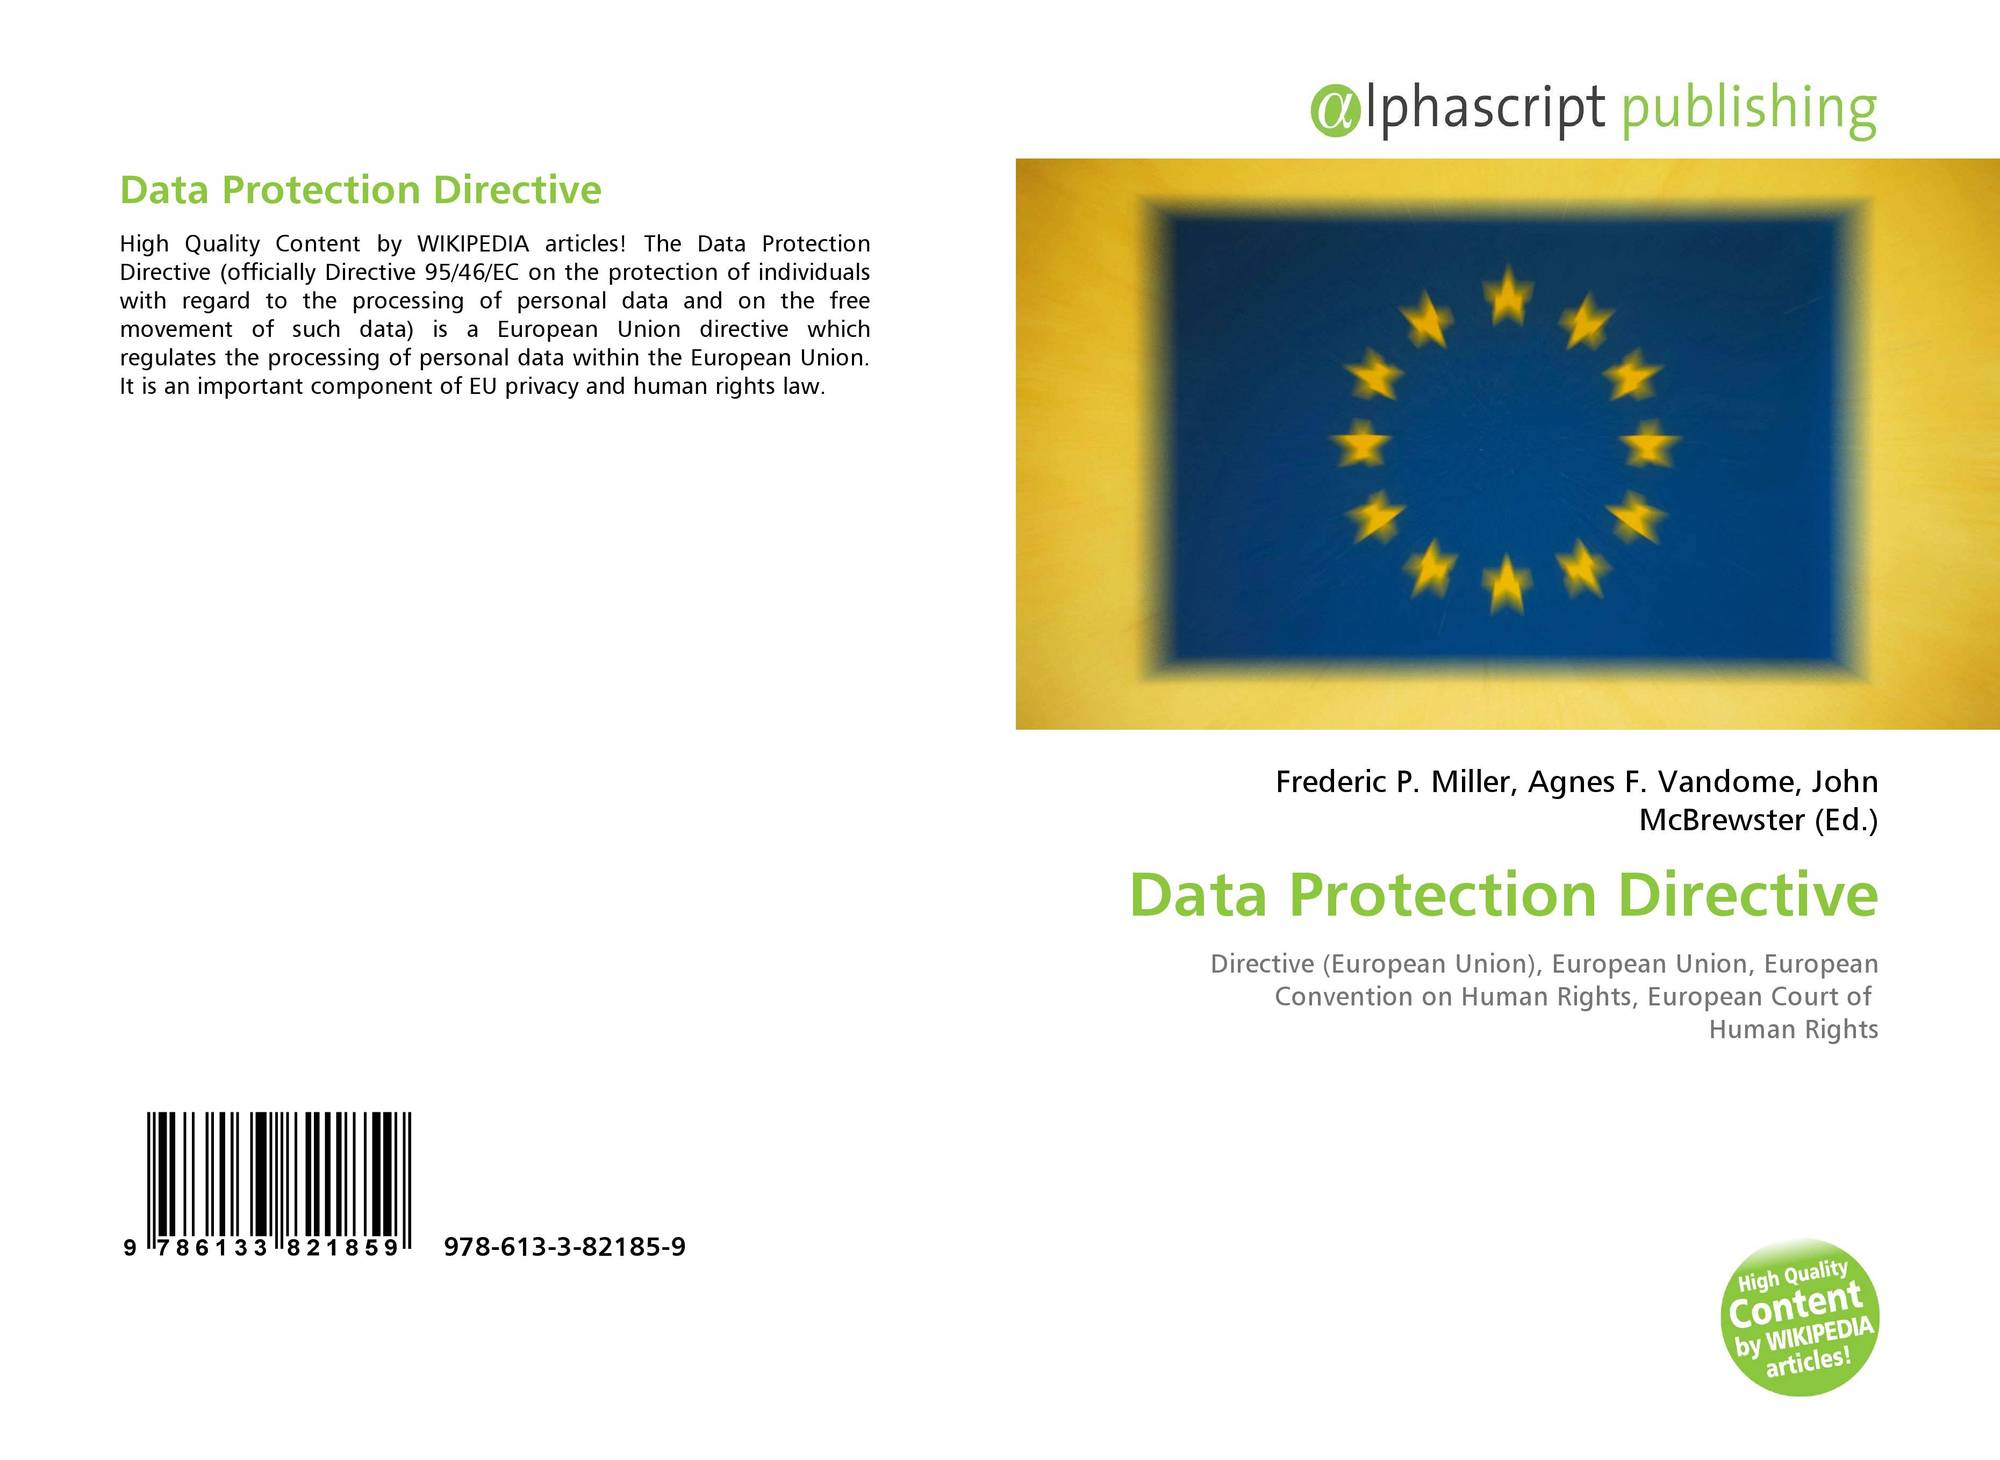 the data protection directive The data protection directive (officially directive 95/46/ec on the protection of individuals with regard to the processing of personal data and on in order to understand the directive, it is necessary to understand how and why eu and us perspectives on data protection and privacy are different.